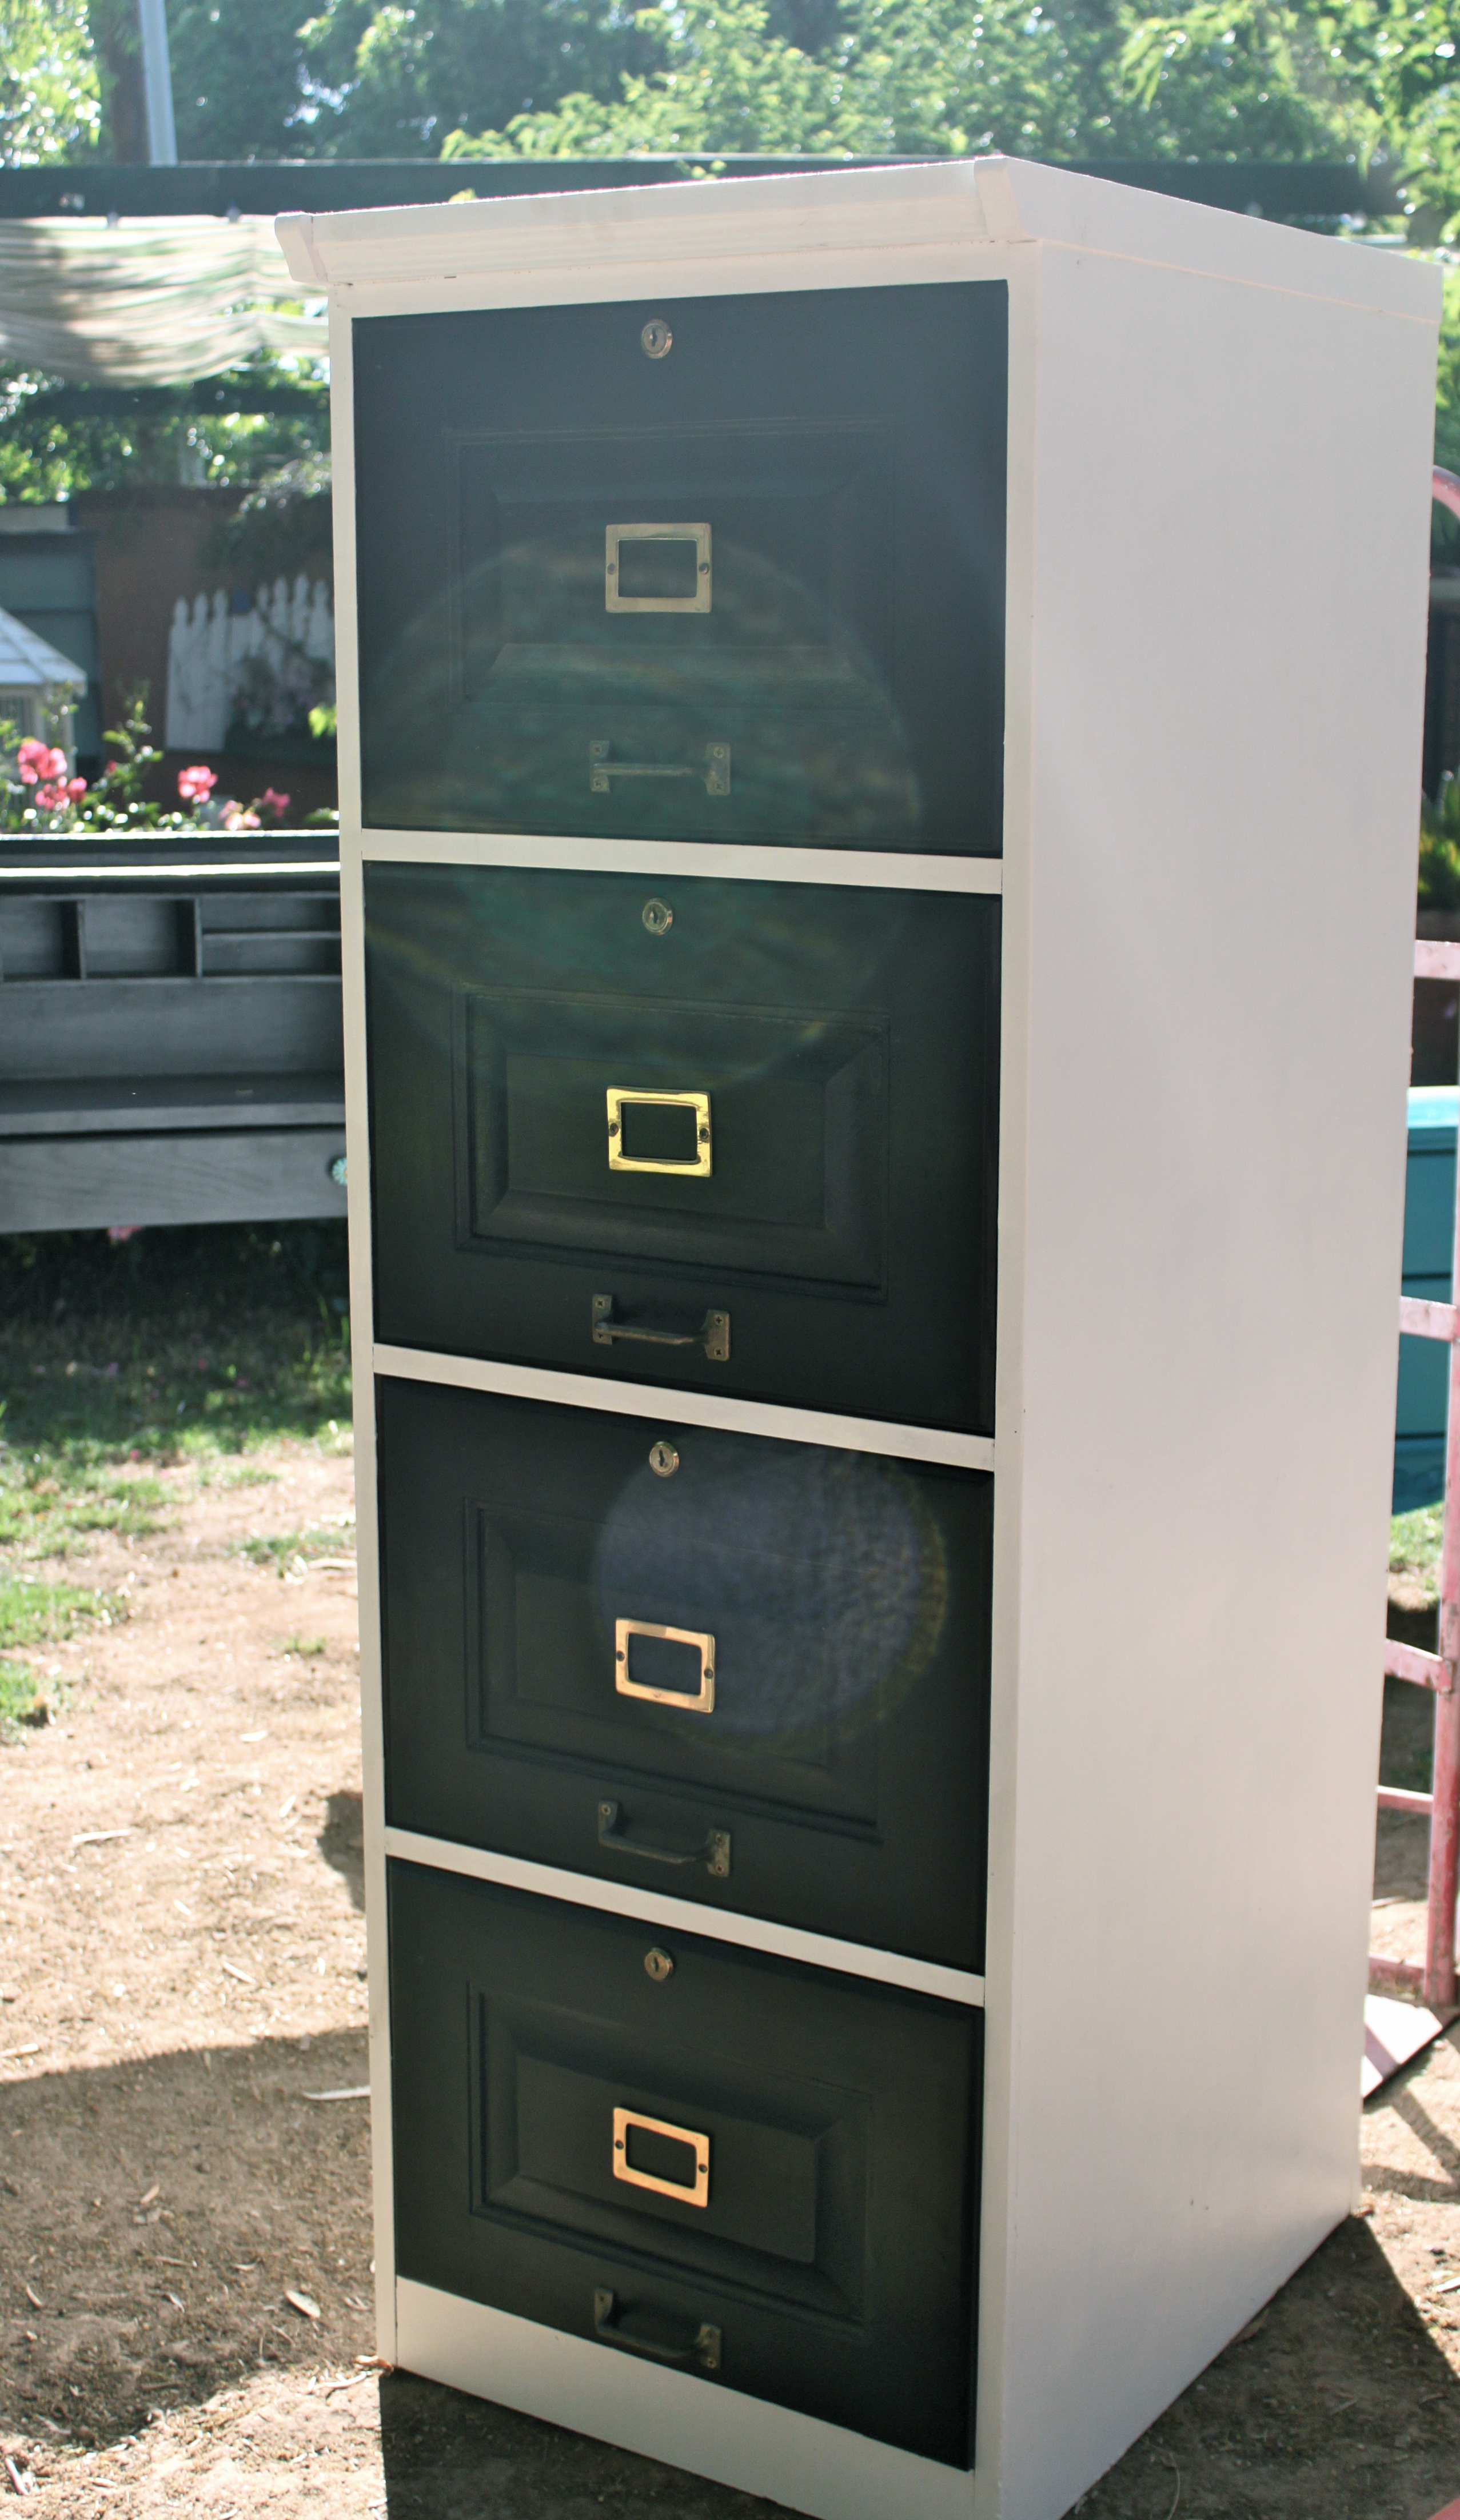 Repurposed FourDrawer Filing Cabinet into Dresser with